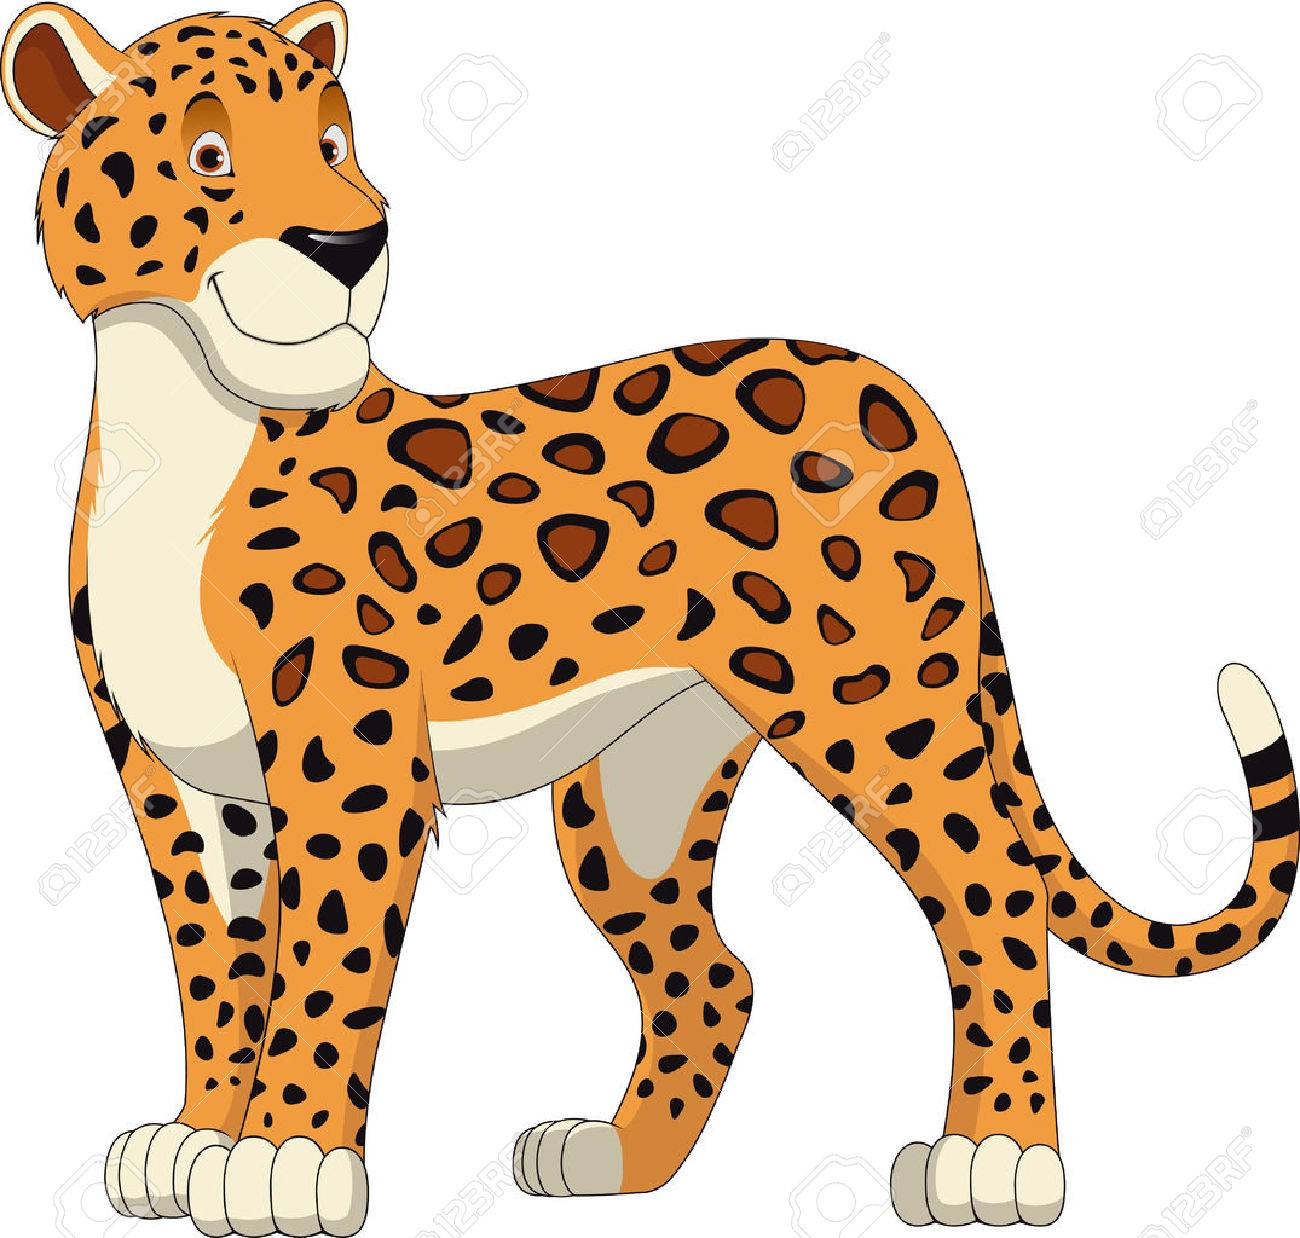 4 945 jaguar stock illustrations cliparts and royalty free jaguar rh 123rf com jaguar clipart easy jaguar clipart png